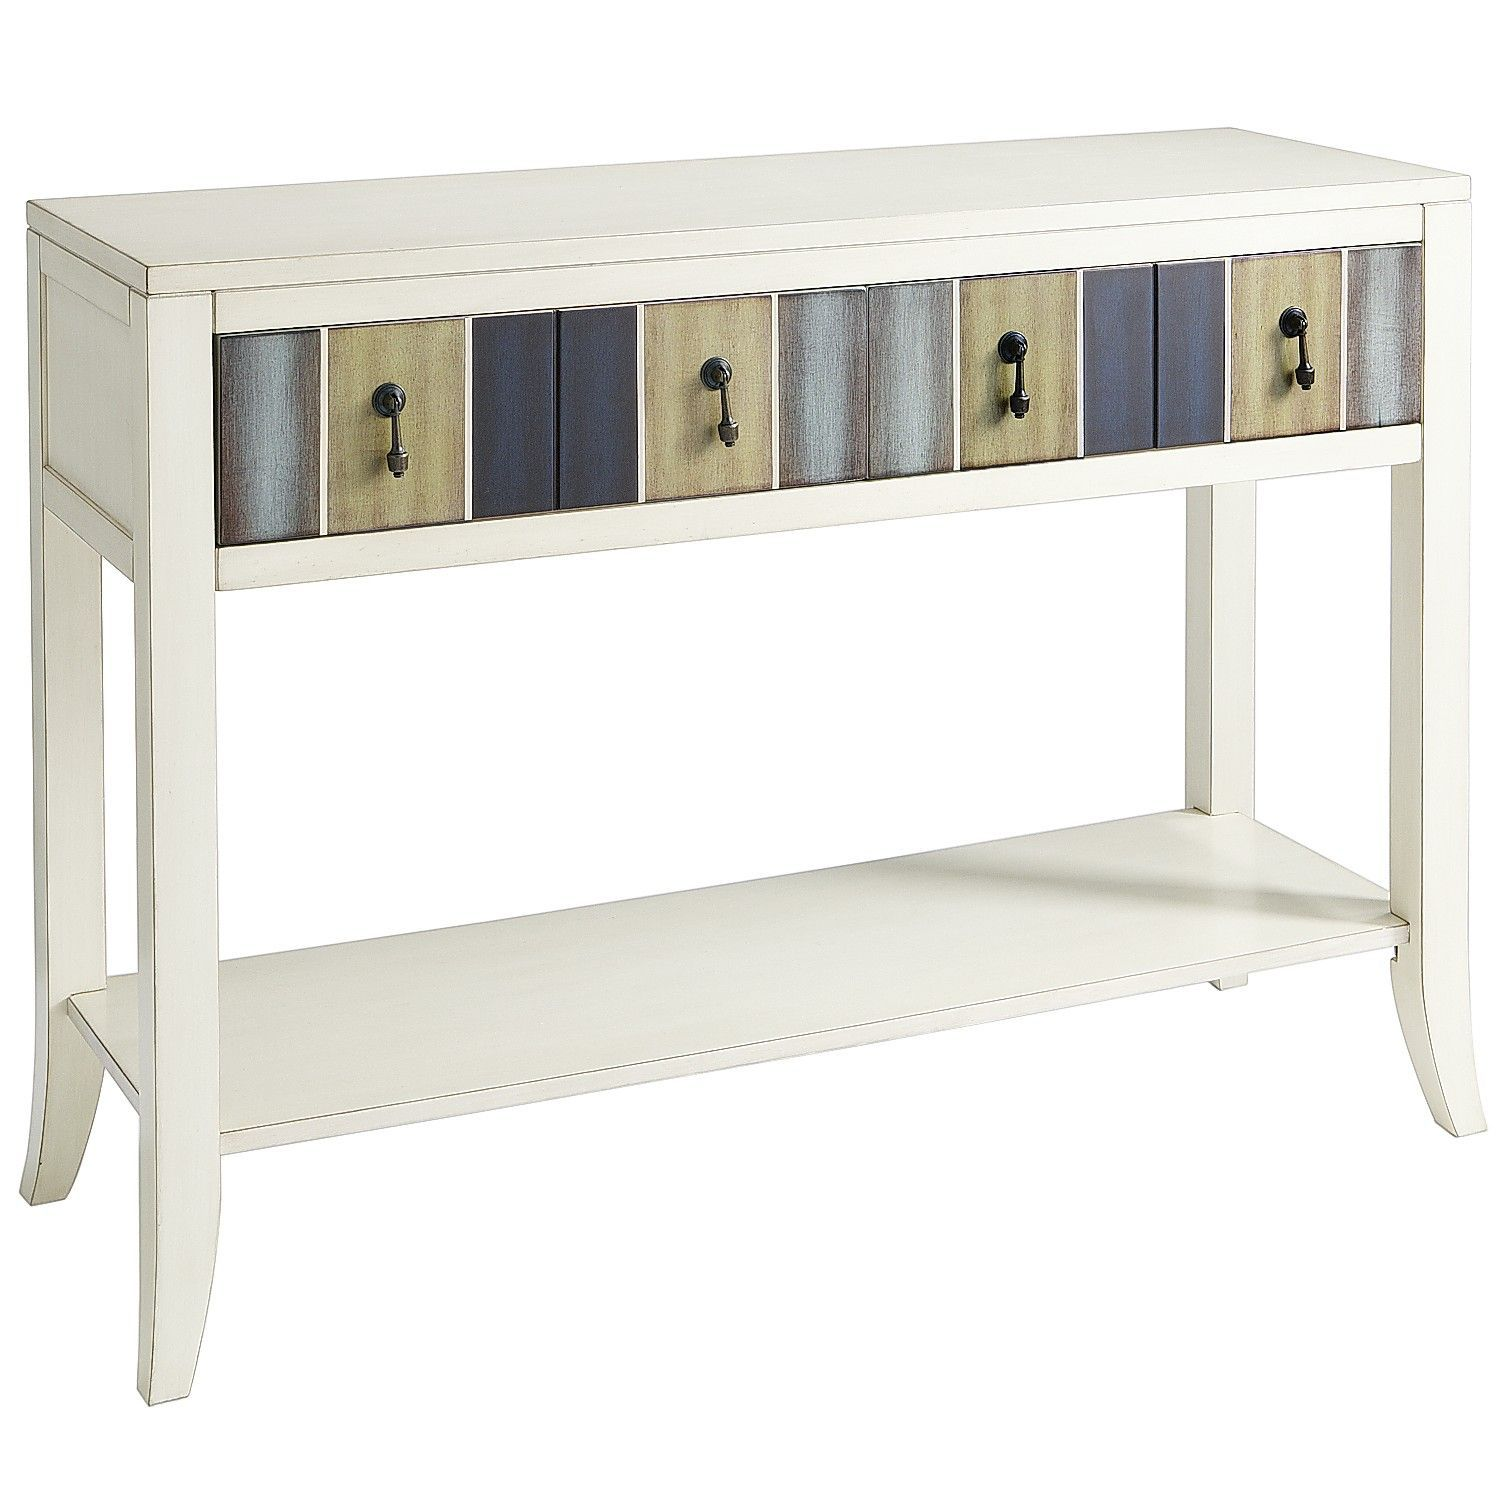 Truett console table products pinterest console table console